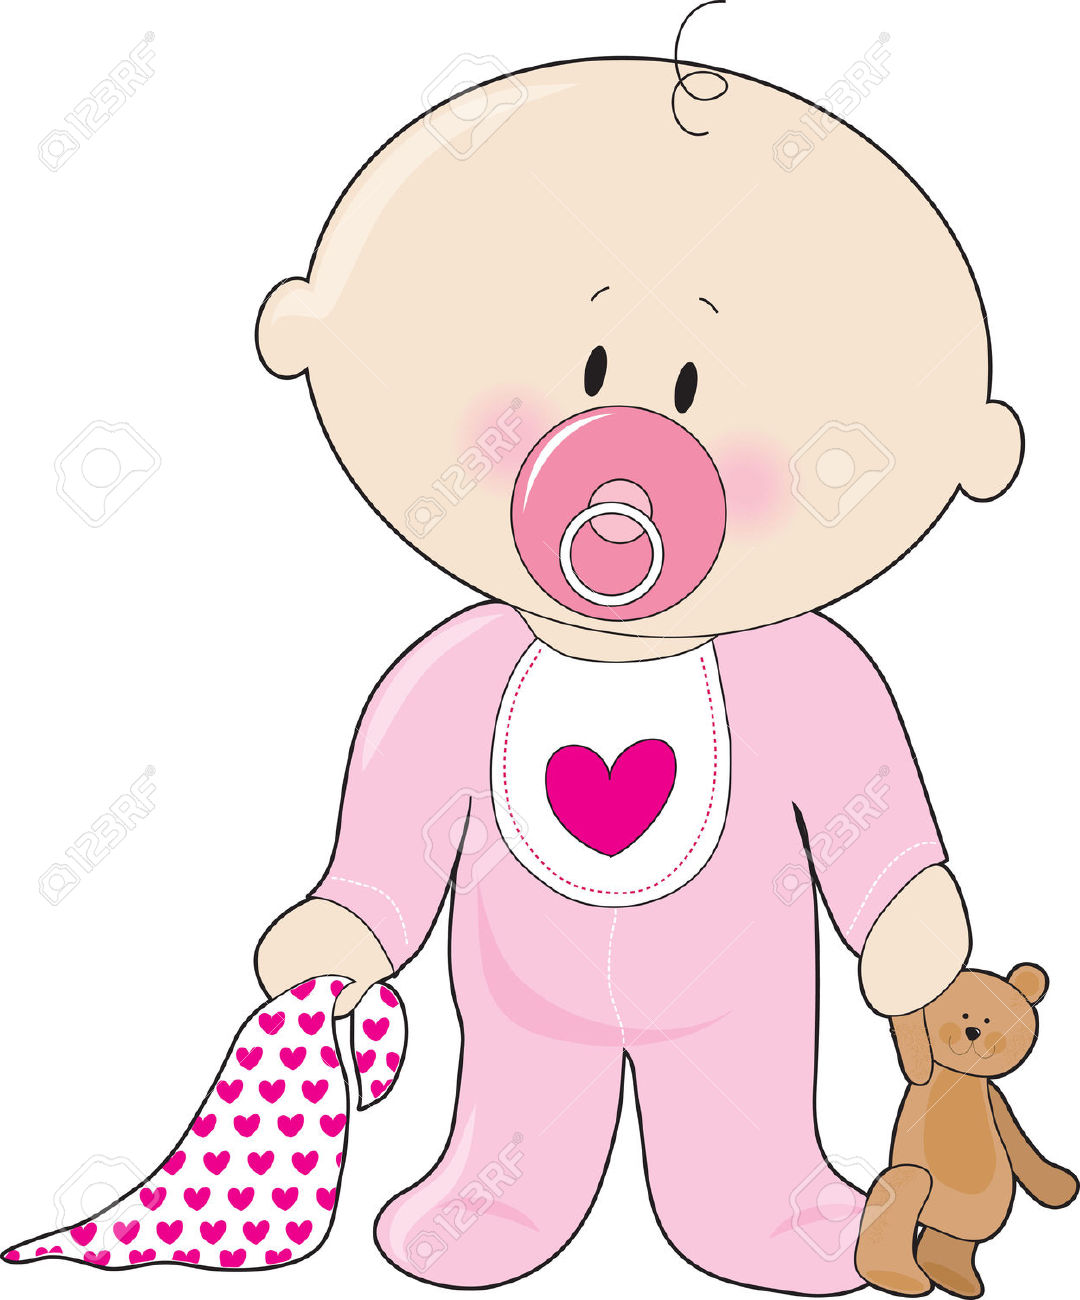 Clip art. Baby girl clipart images